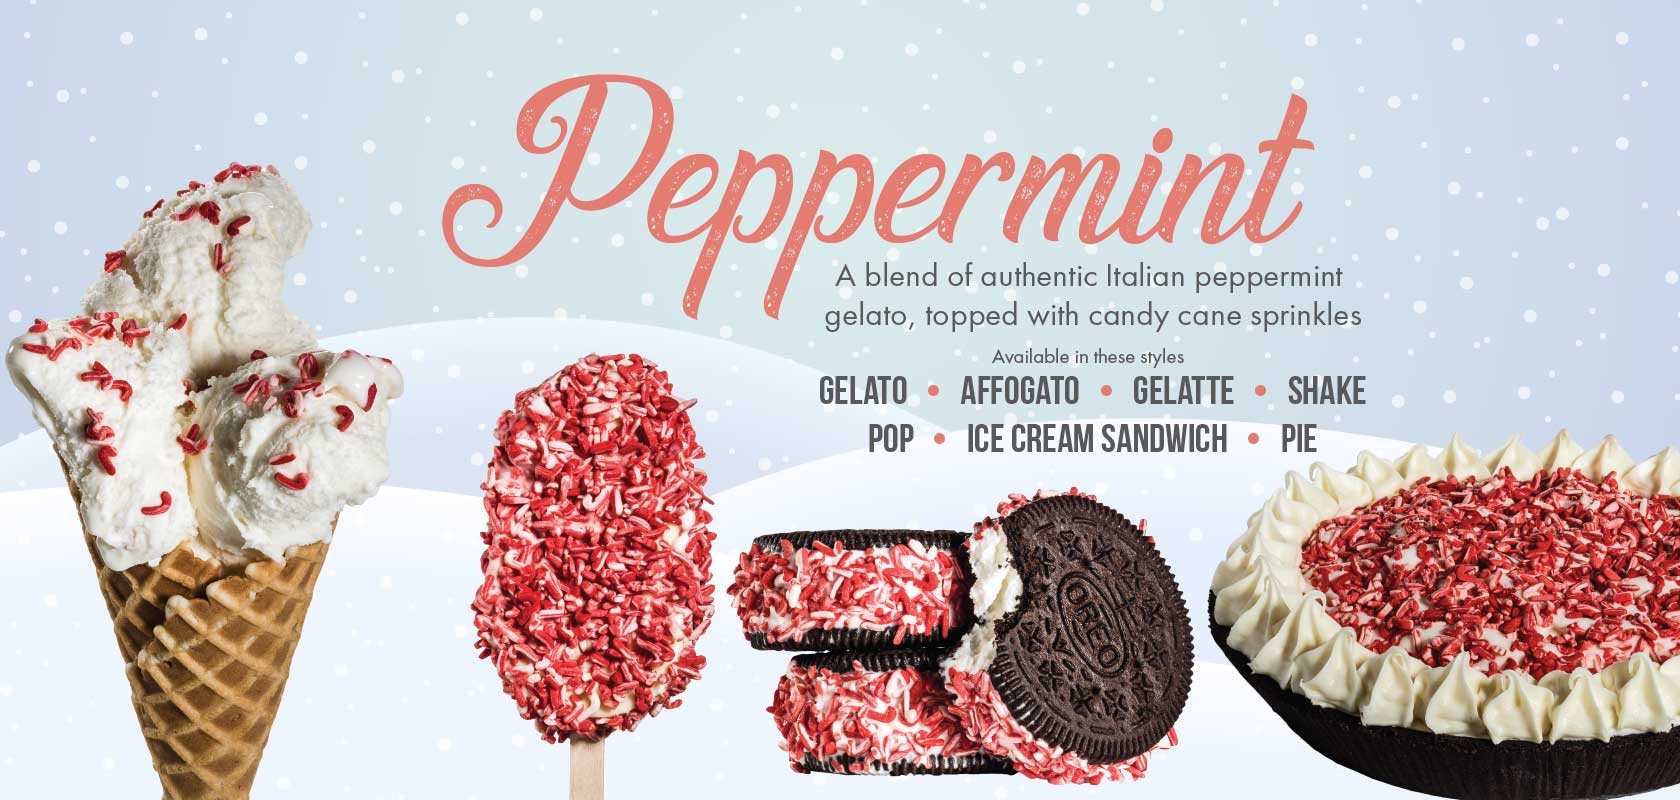 Peppermint Gelato! A blend of authentic Italian peppermint gelato, topped with candy cane sprinkles. Available in these styles: Gelato, Affogato, Gelatte, Shake, Pop, Pie and Ice Cream Sandwich.